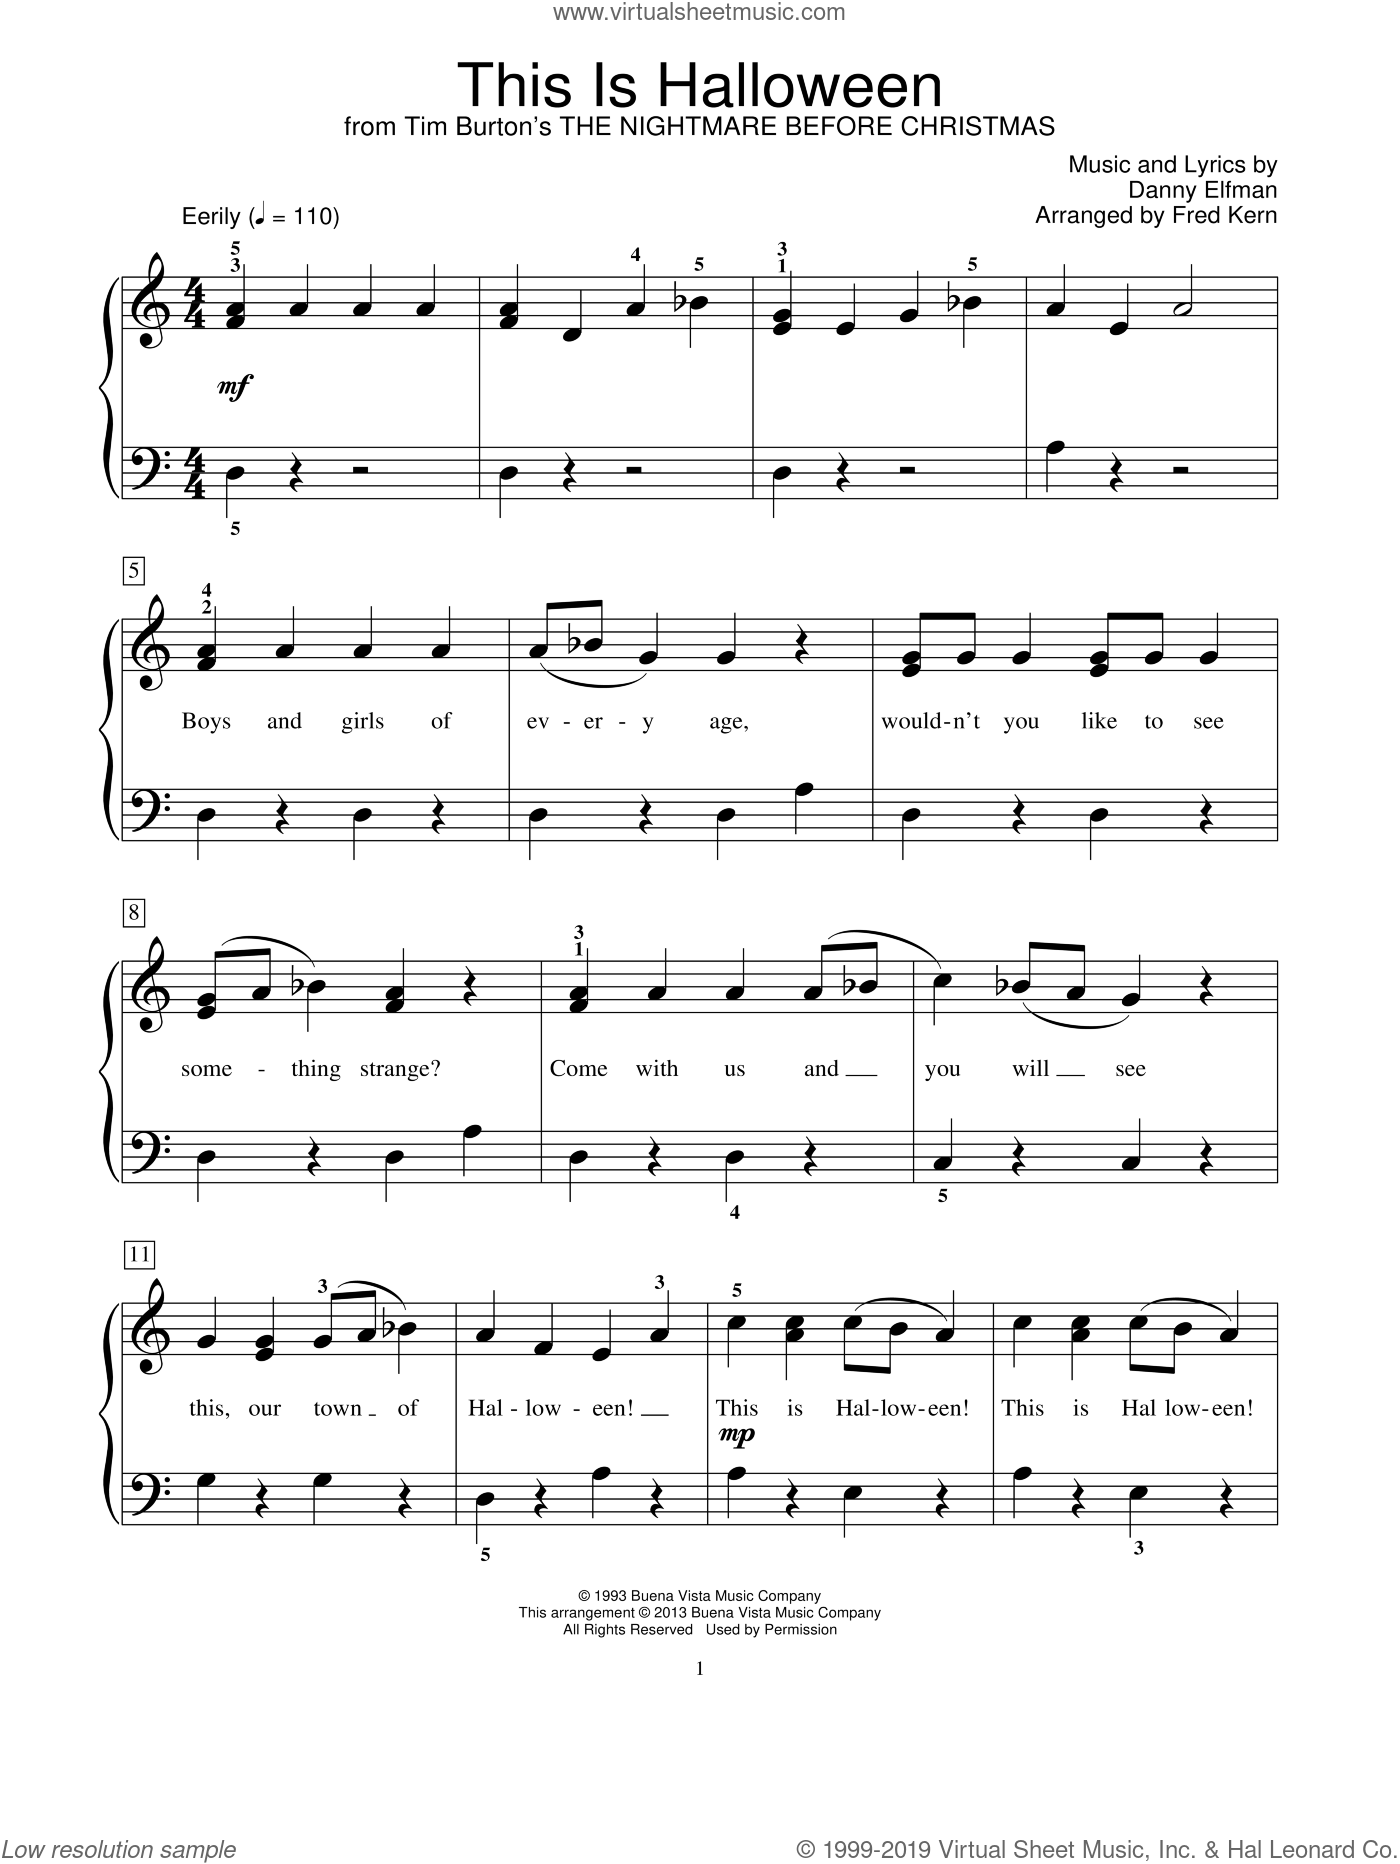 Nightmare Before Christmas Piano Sheet Music.Elfman This Is Halloween From The Nightmare Before Christmas Sheet Music Beginner For Piano Solo Elementary